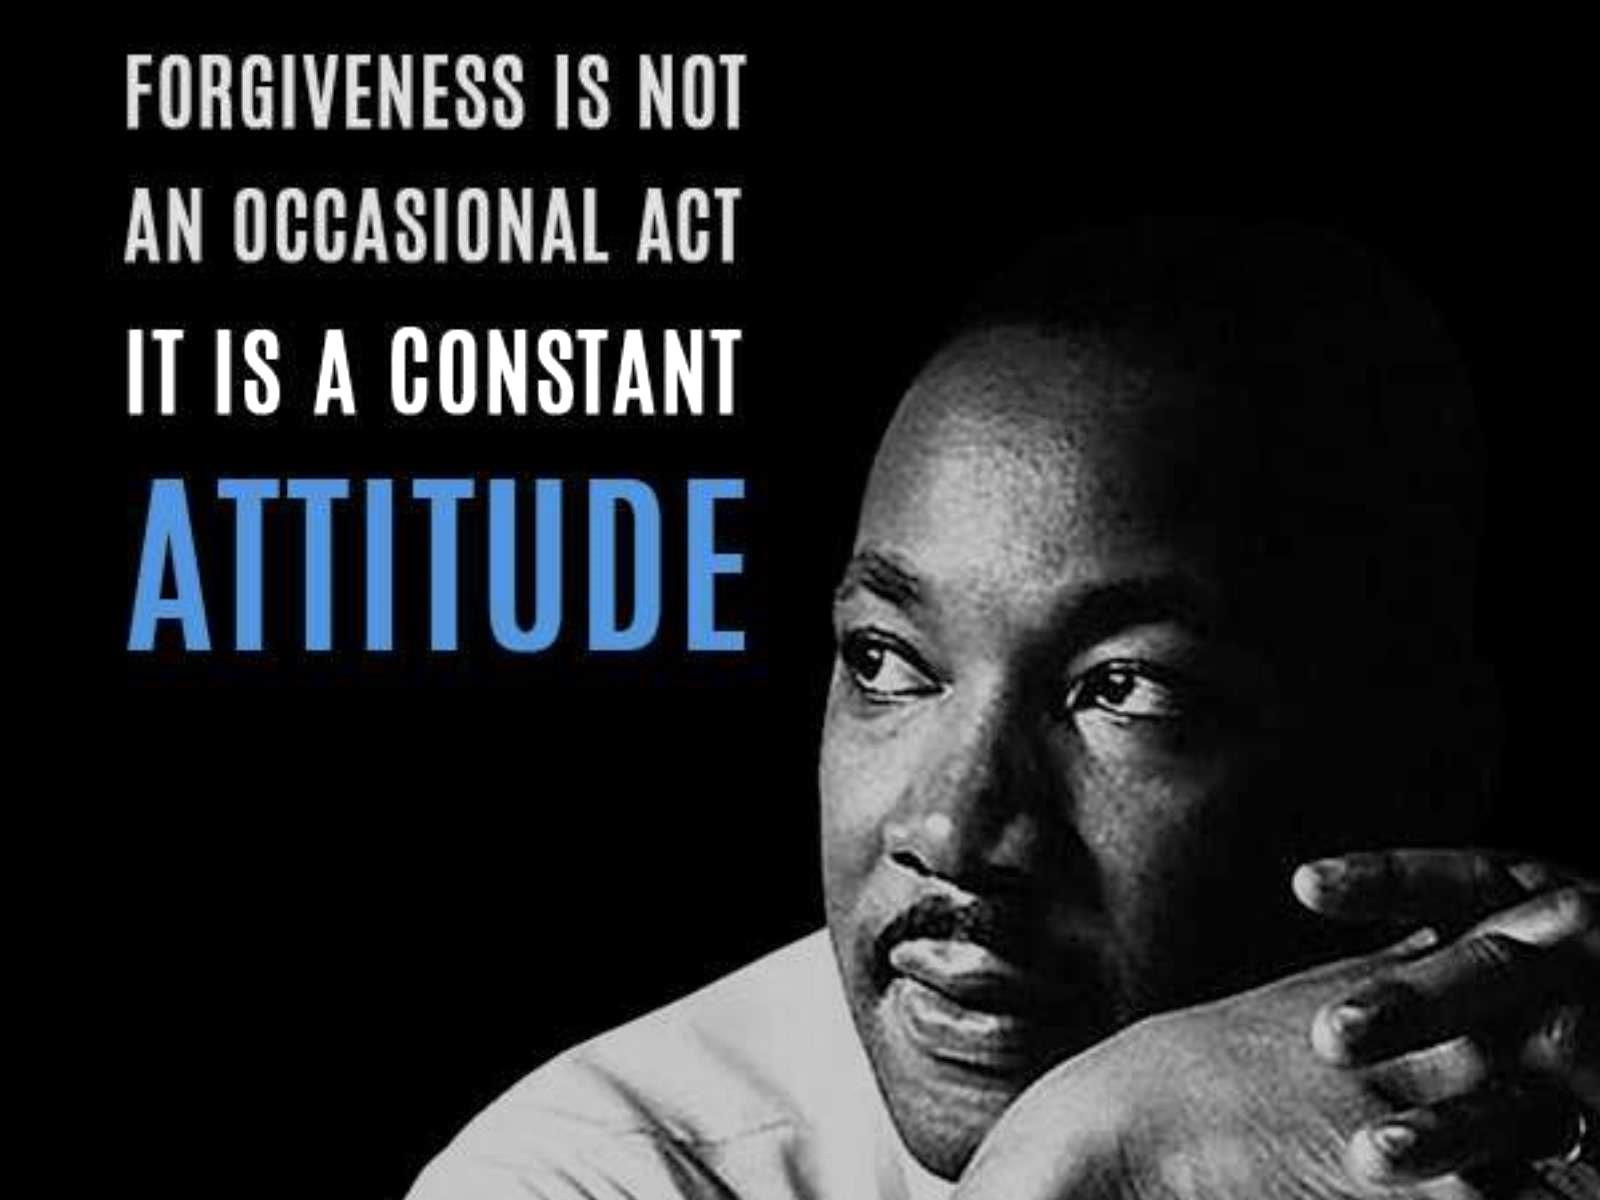 Mlk Quotes On Education  mlk quote education Google Search Quotes